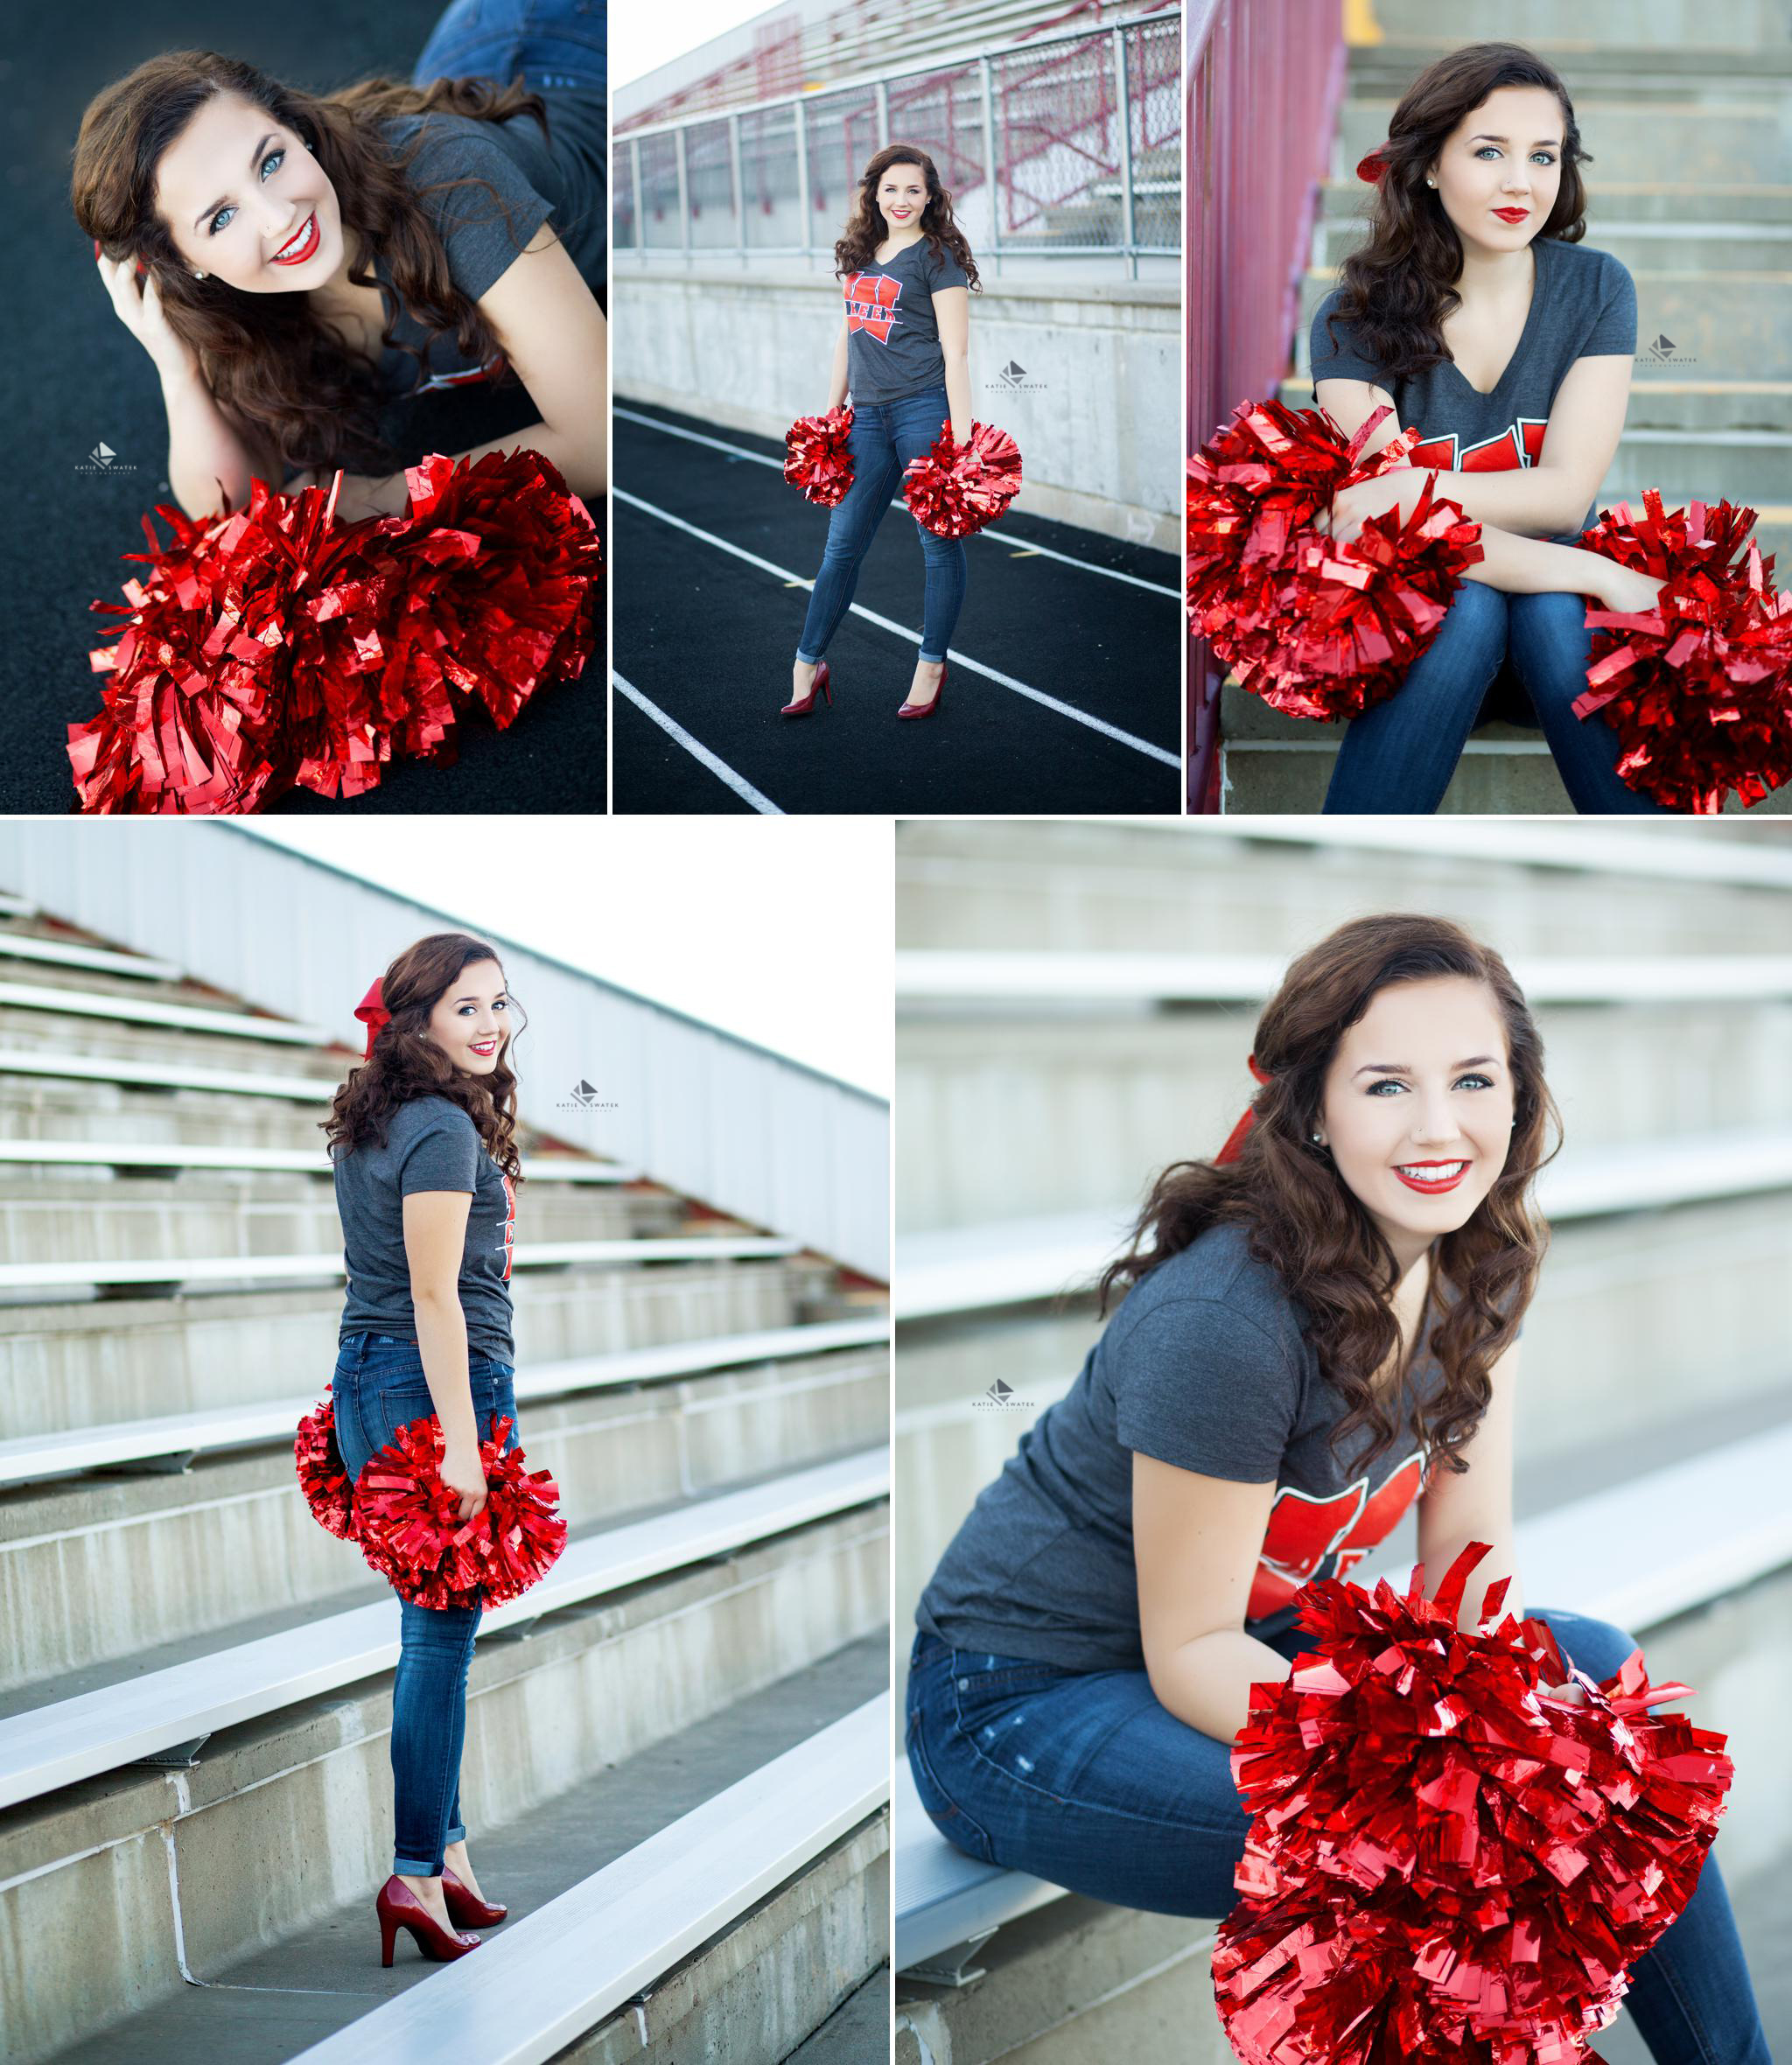 brunette senior girl in a pair of jeans and a cheer shirt sitting on the bleachers with red pom poms and red high heels